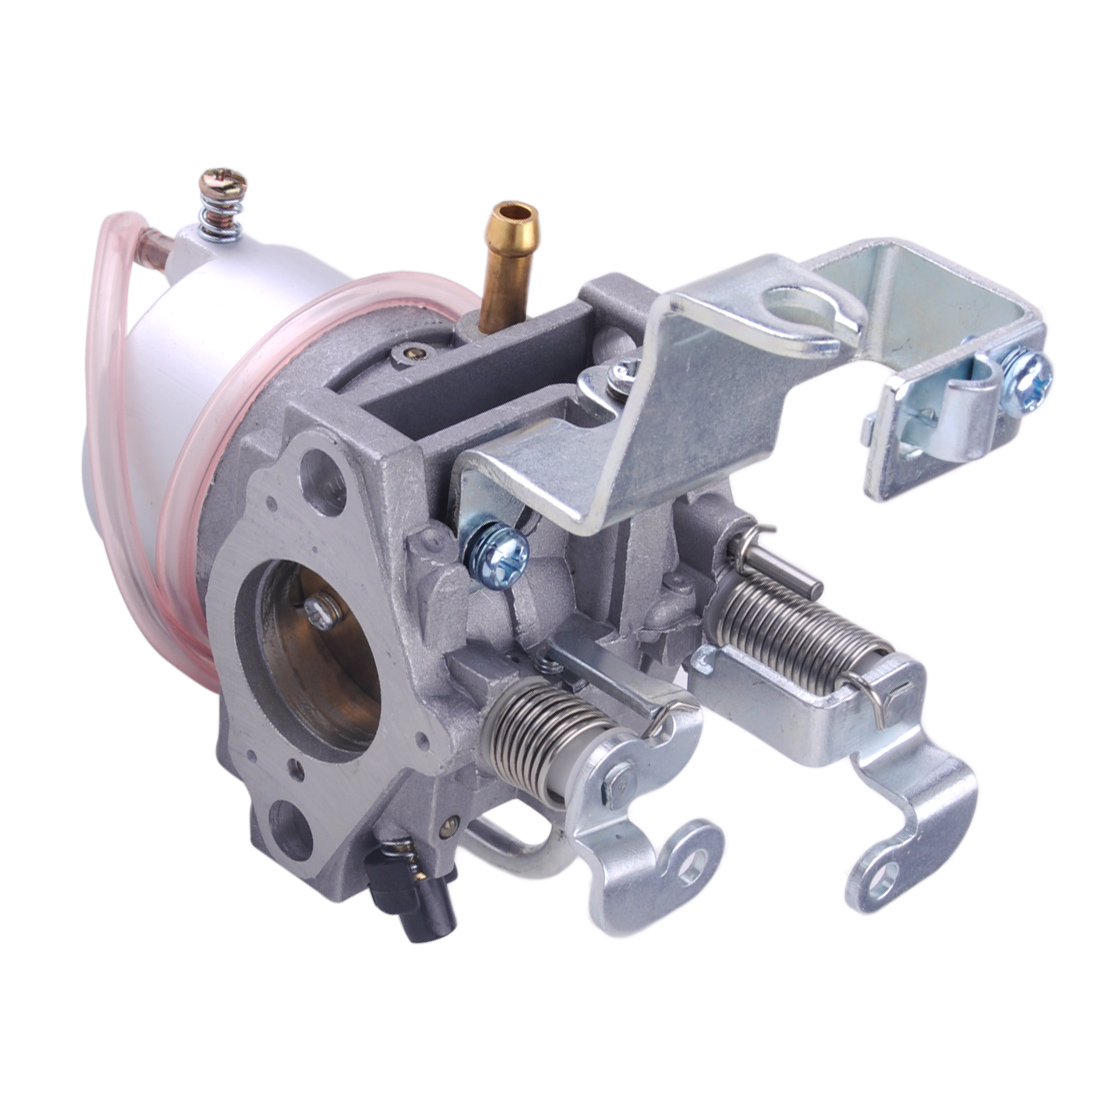 DWCX New Metal Carburetor Carb JN6 14101 00 for Yamaha Golf Cart G16 G18 G19 G20 G21 4 Cycle Gas Engine 1996 1997 1998 2002